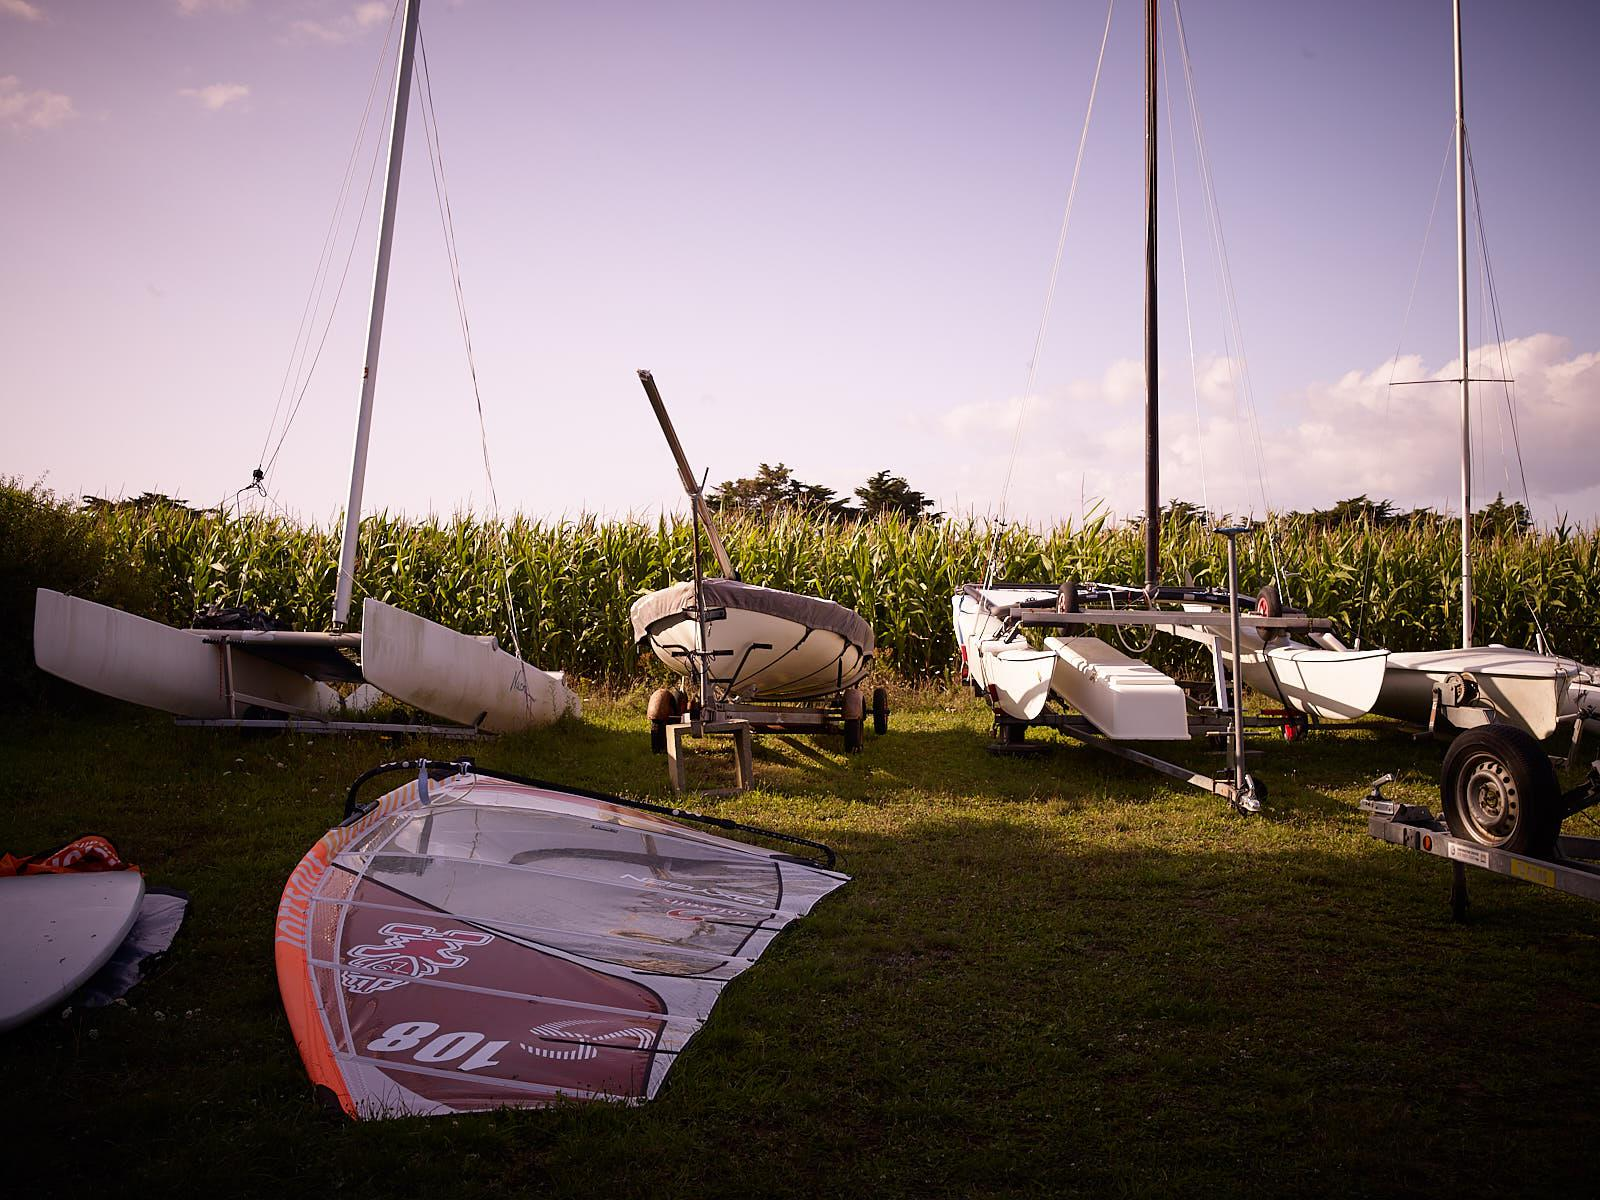 Club Nautique du Rohu - The land available for boat parking rental